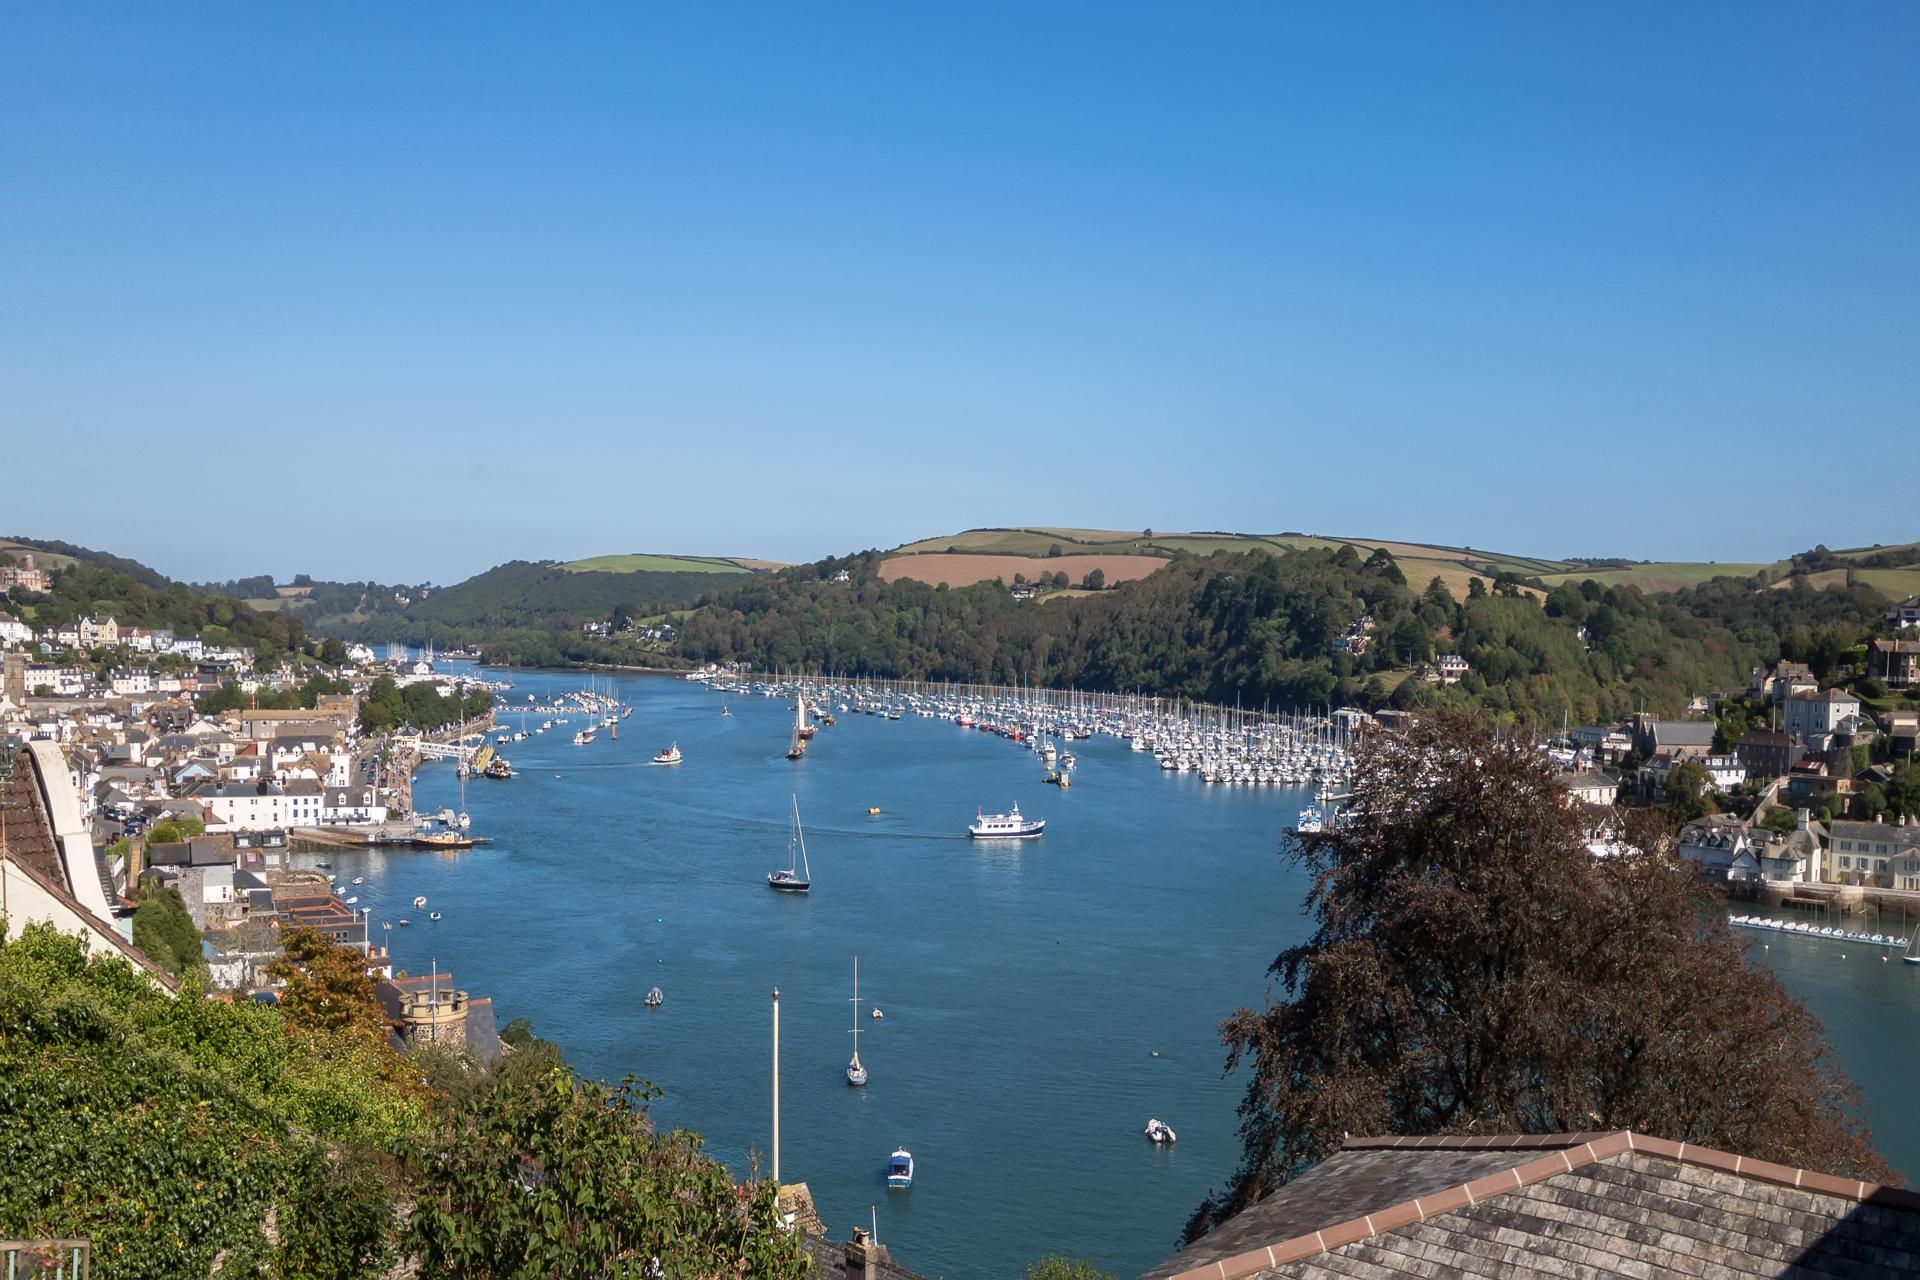 Dartmouth harbour on the River Dart